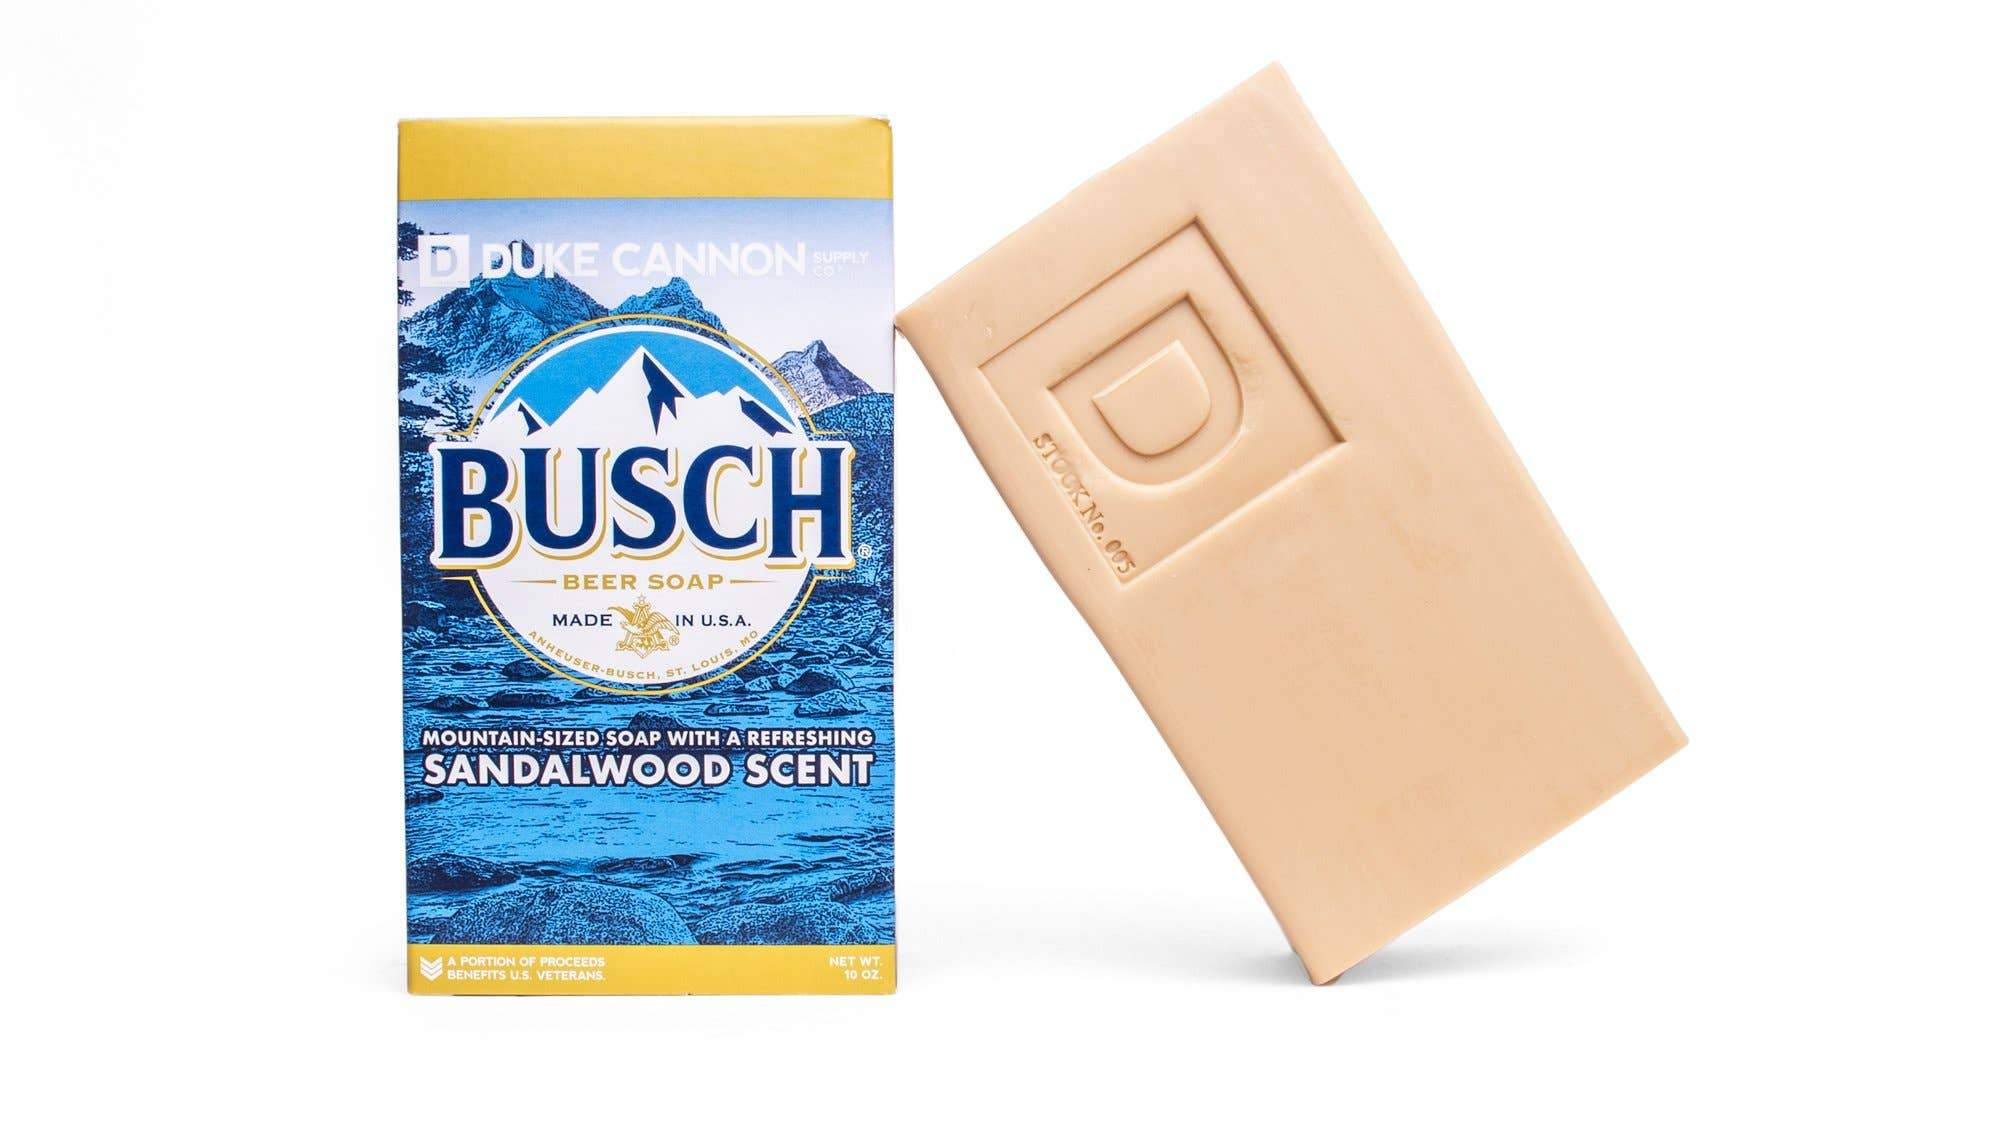 Busch Beer Soap - Duke Cannon